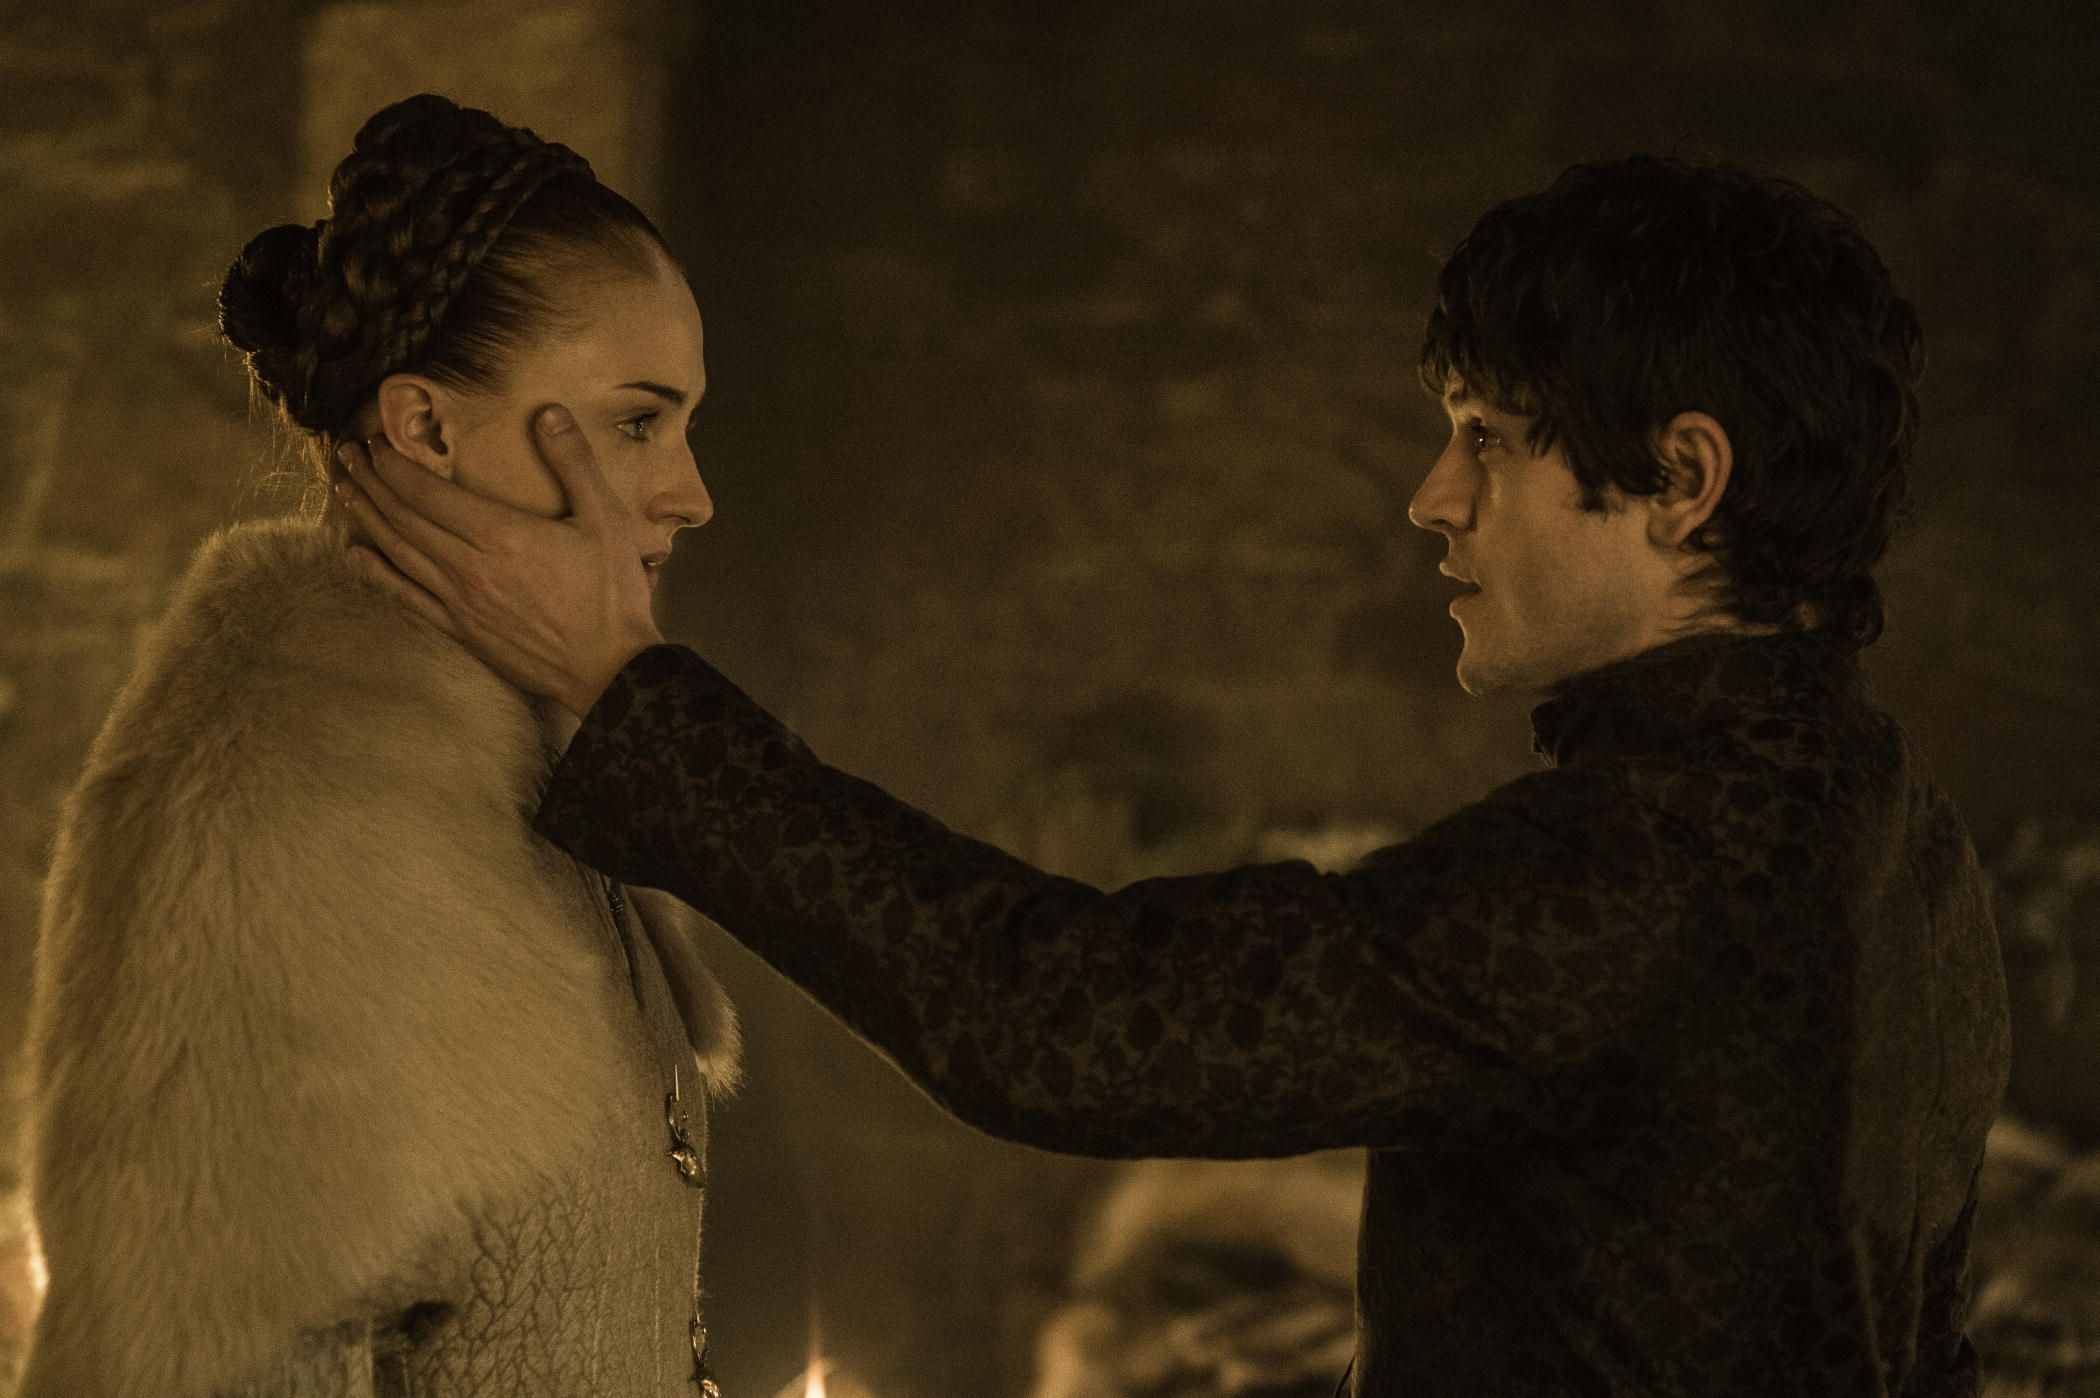 Game ot thrones - 5 temporada - Sansa and Ramsayt